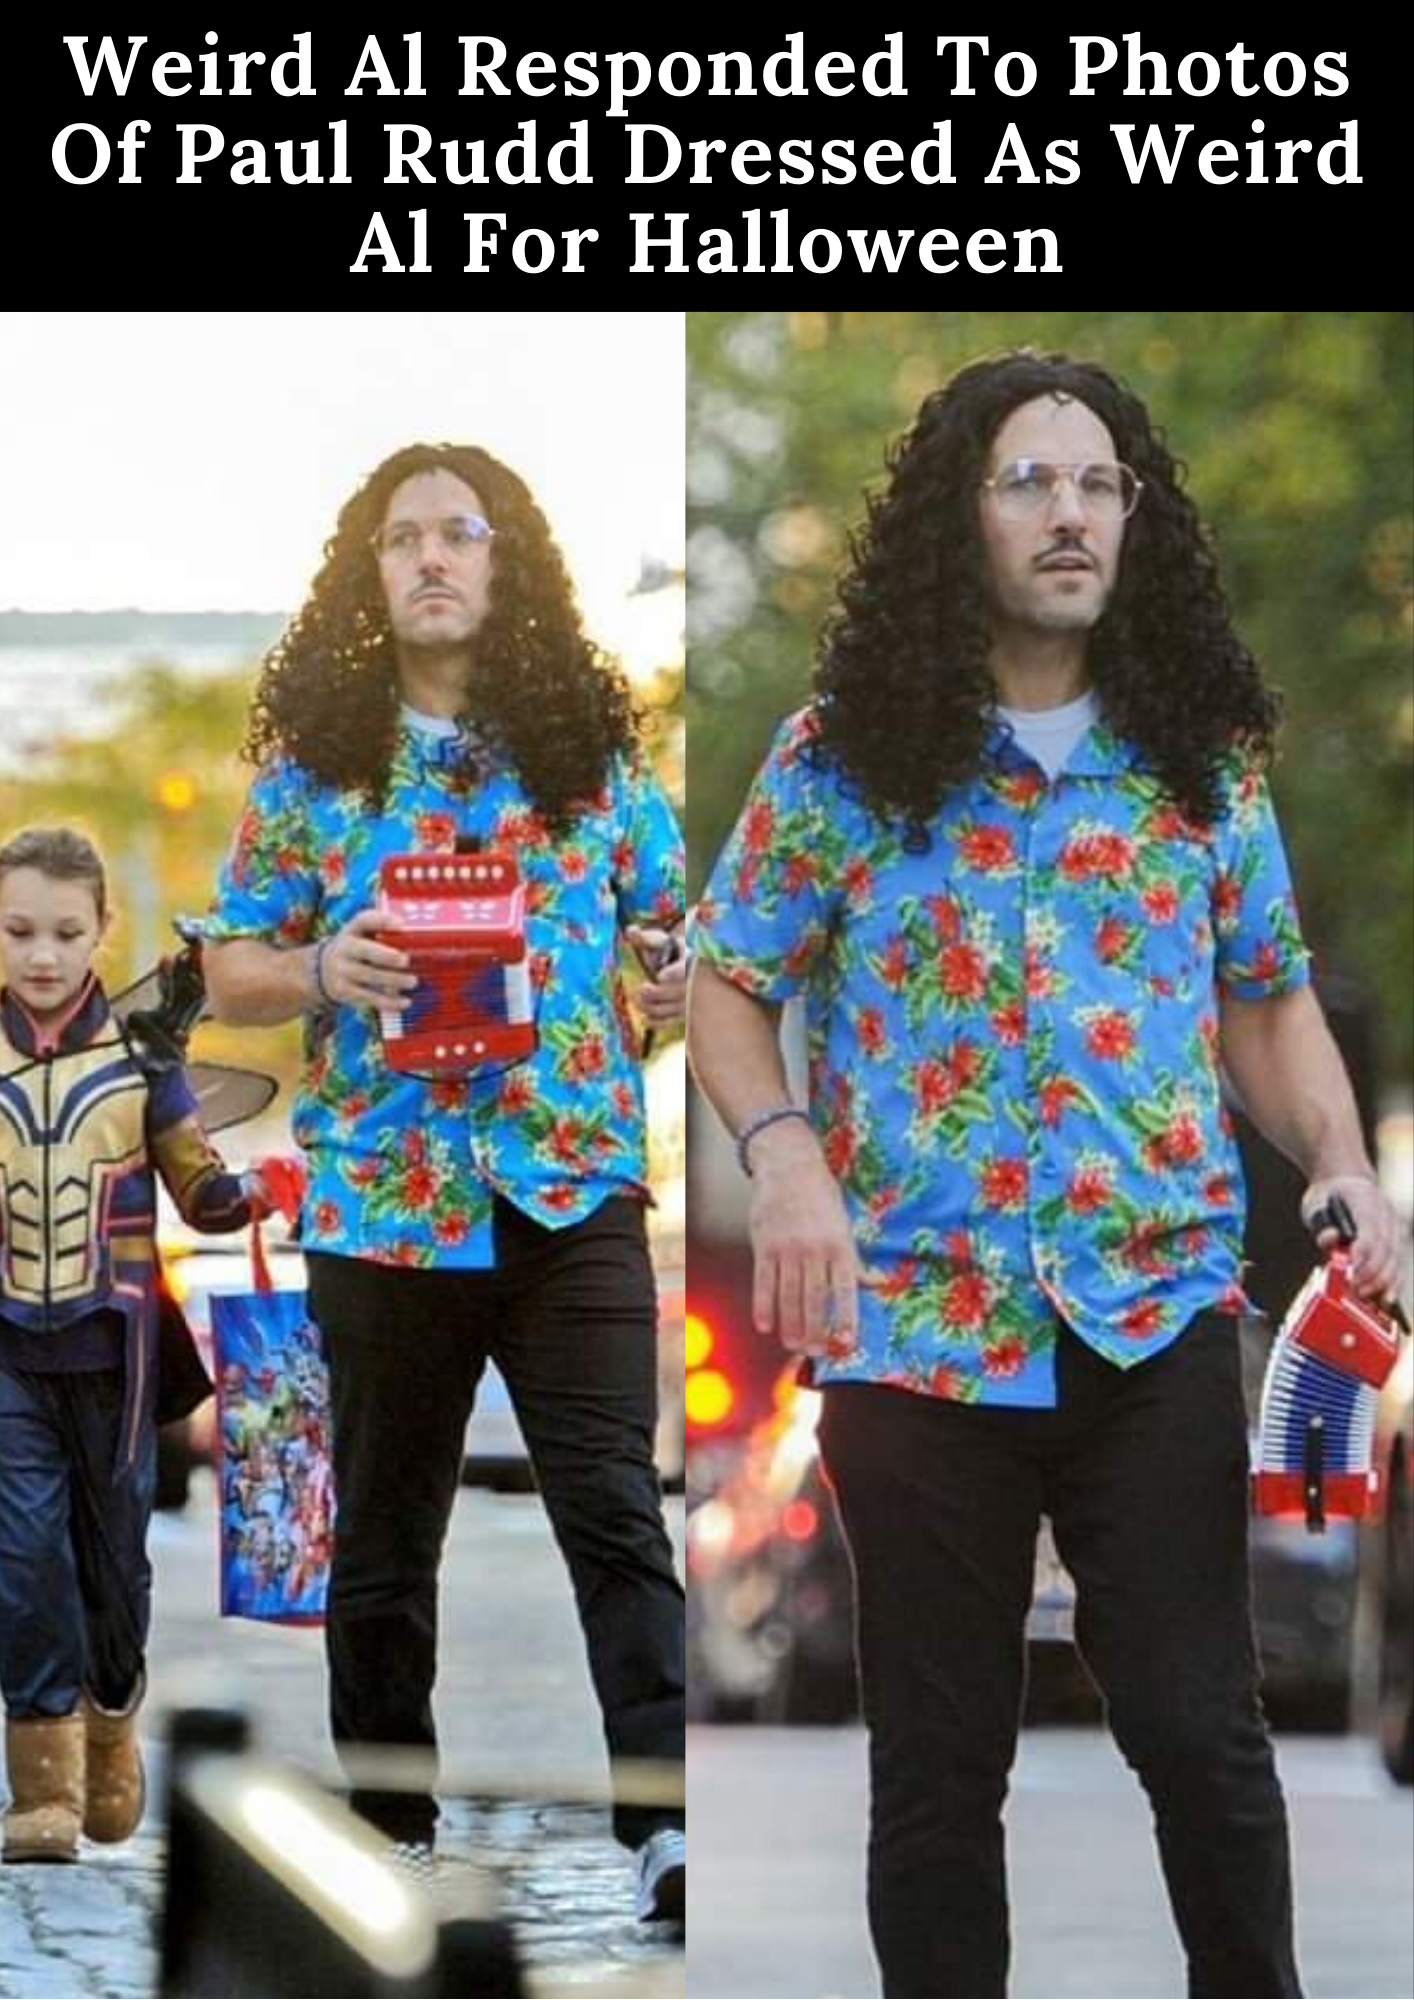 Weird Al Responded To Photos Of Paul Rudd Dressed As Weird Al For Halloween In 2020 Paul Rudd Celebrity Halloween Costumes Rudd